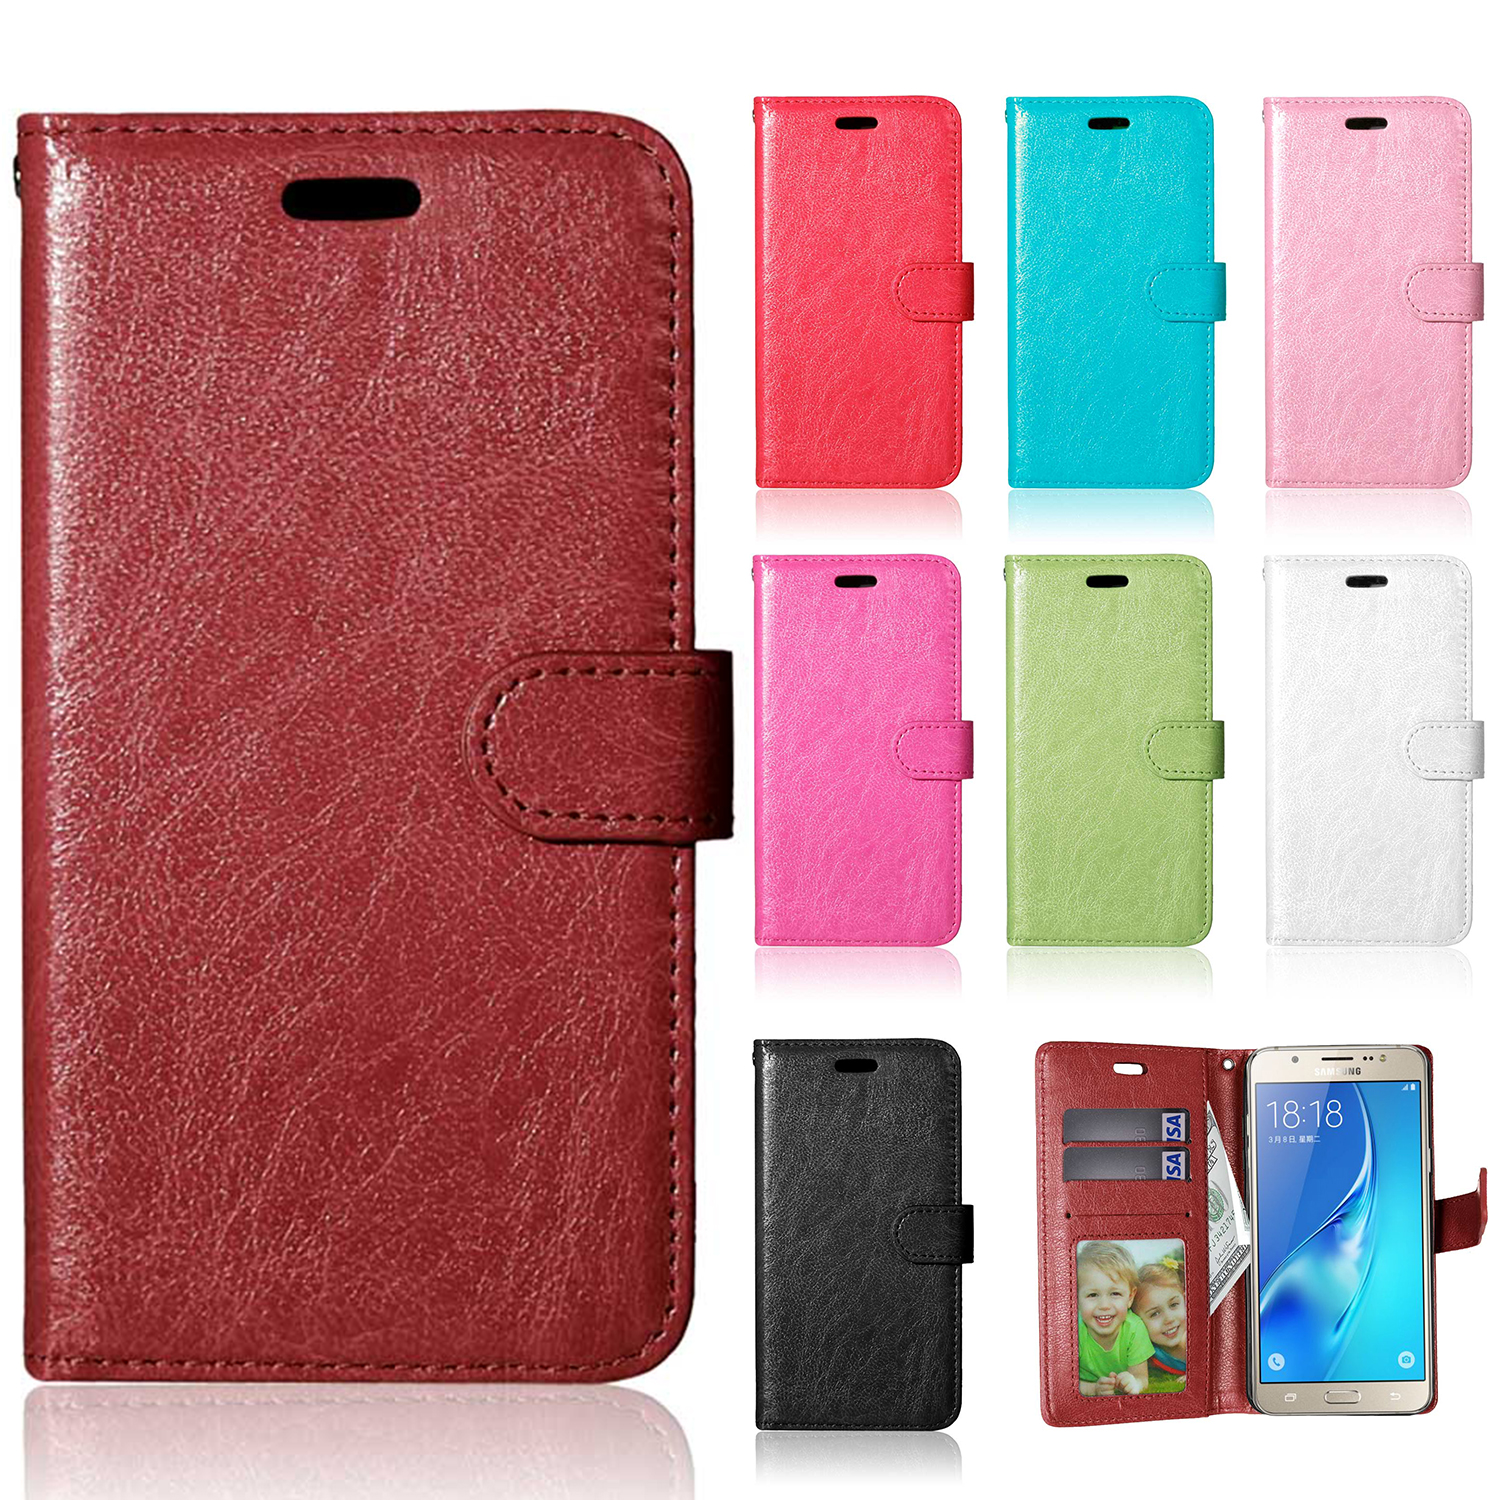 Casing Sony Xperia L M E coque xperia e5 chinaprices net